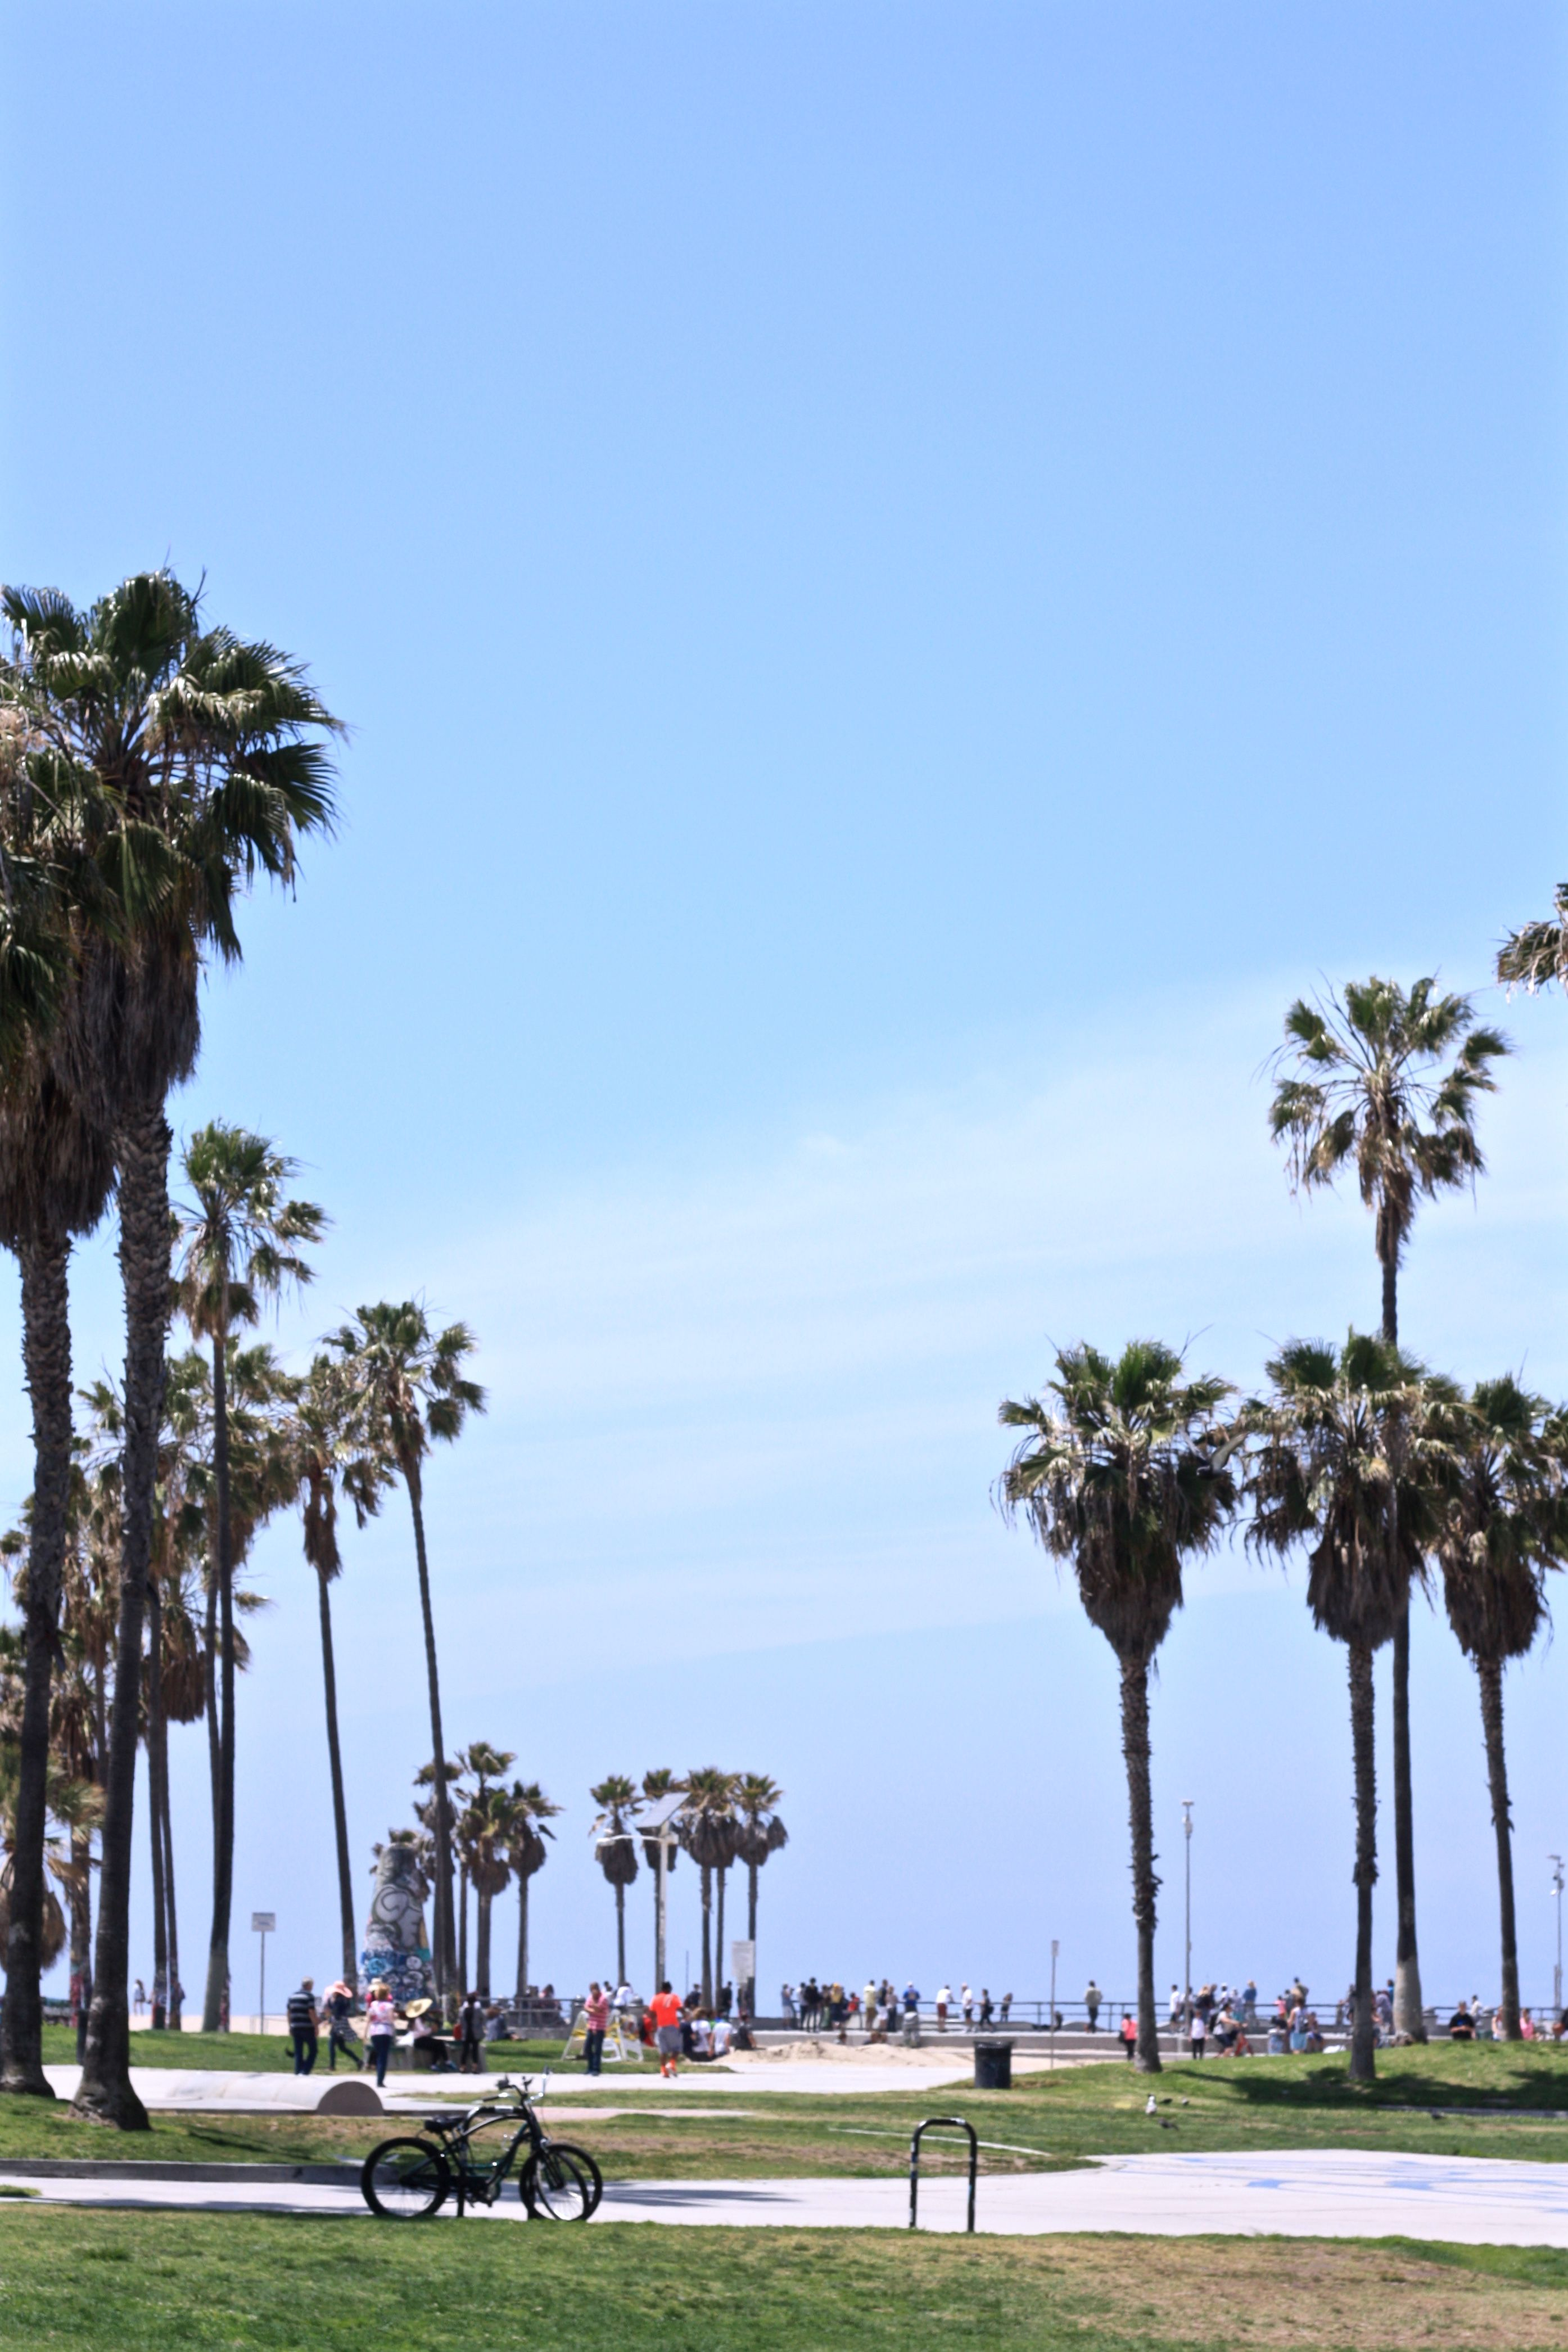 Venice Beach, California, CA, USA